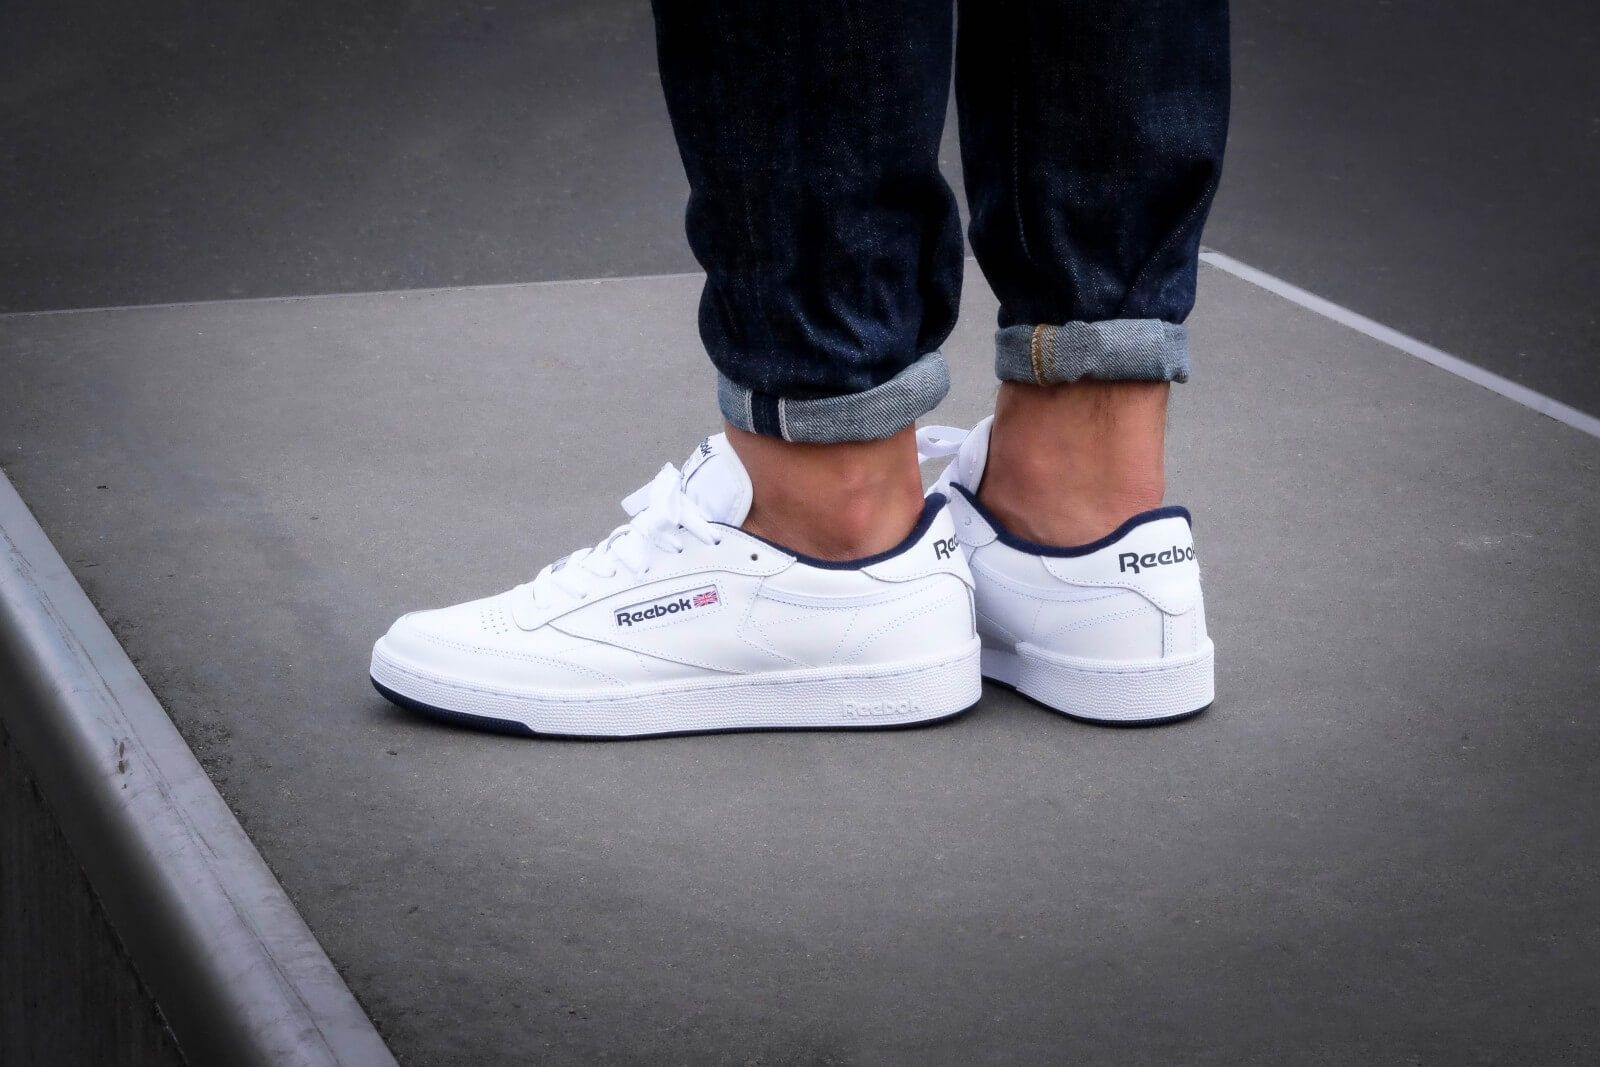 huge discount bea3f 3b917 REEBOK Club C 85 White Navy